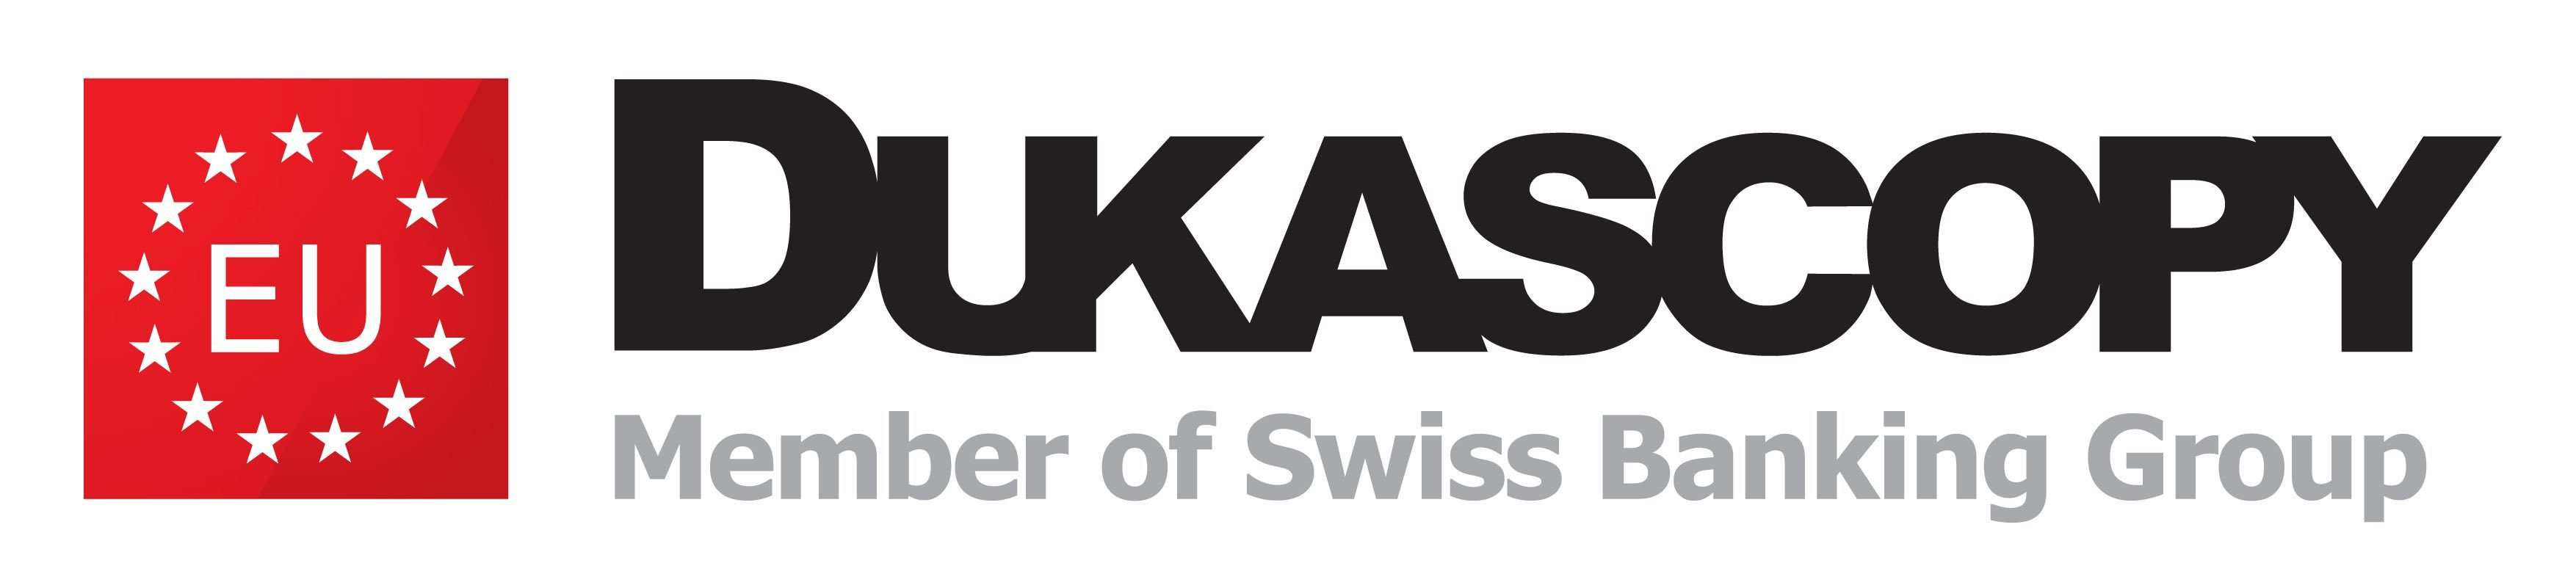 dukascopy Europe - logo